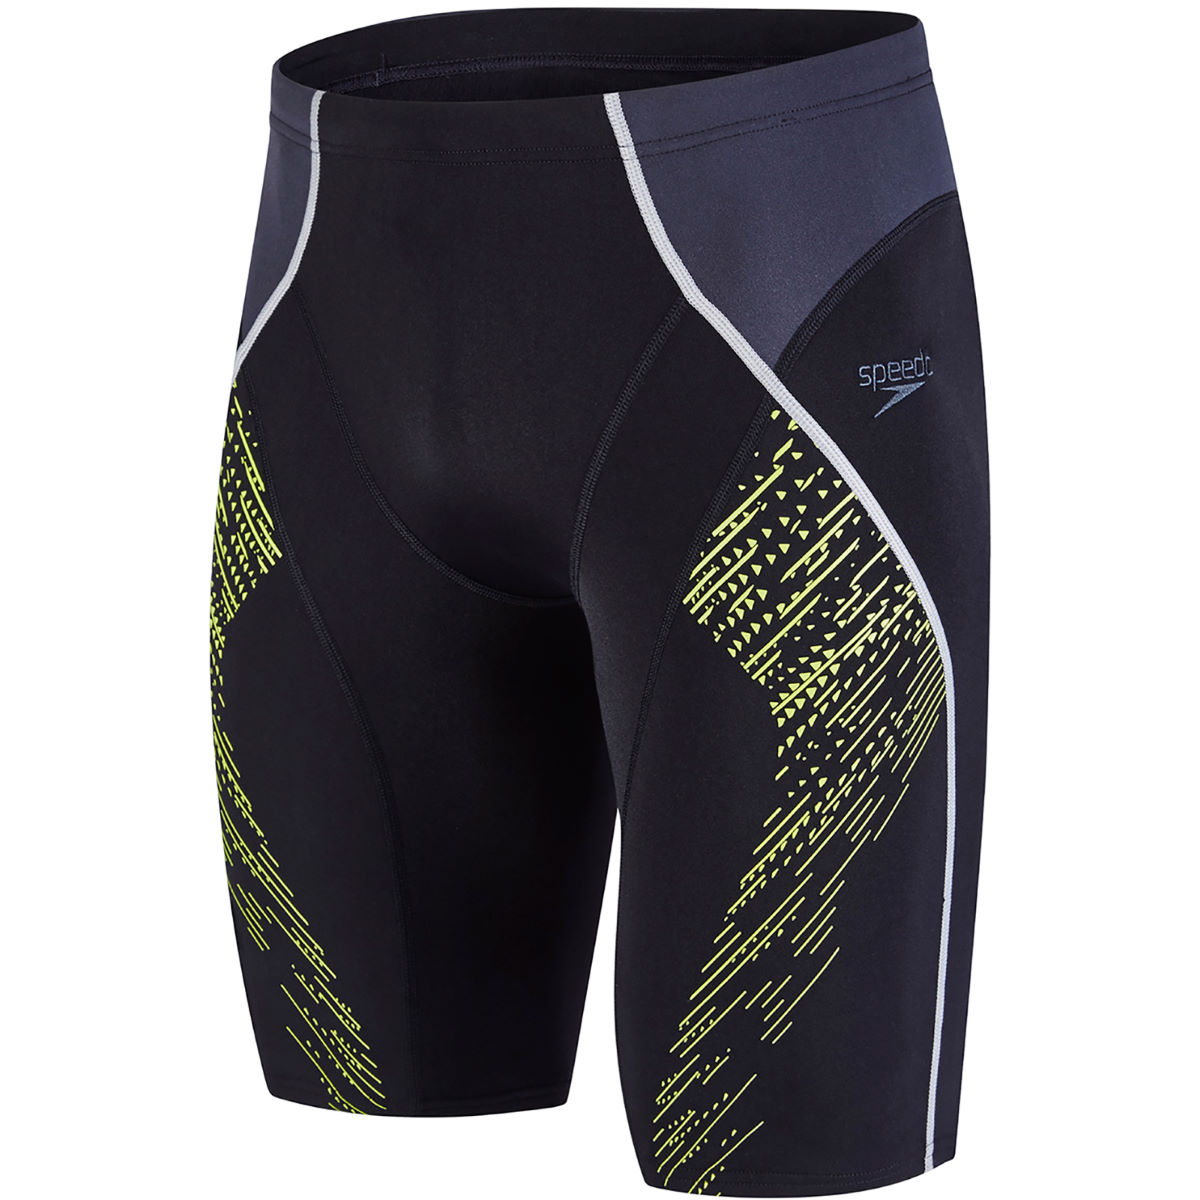 Jammer Speedo Fit Panel - 32 Black/Oxid Grey/Lime